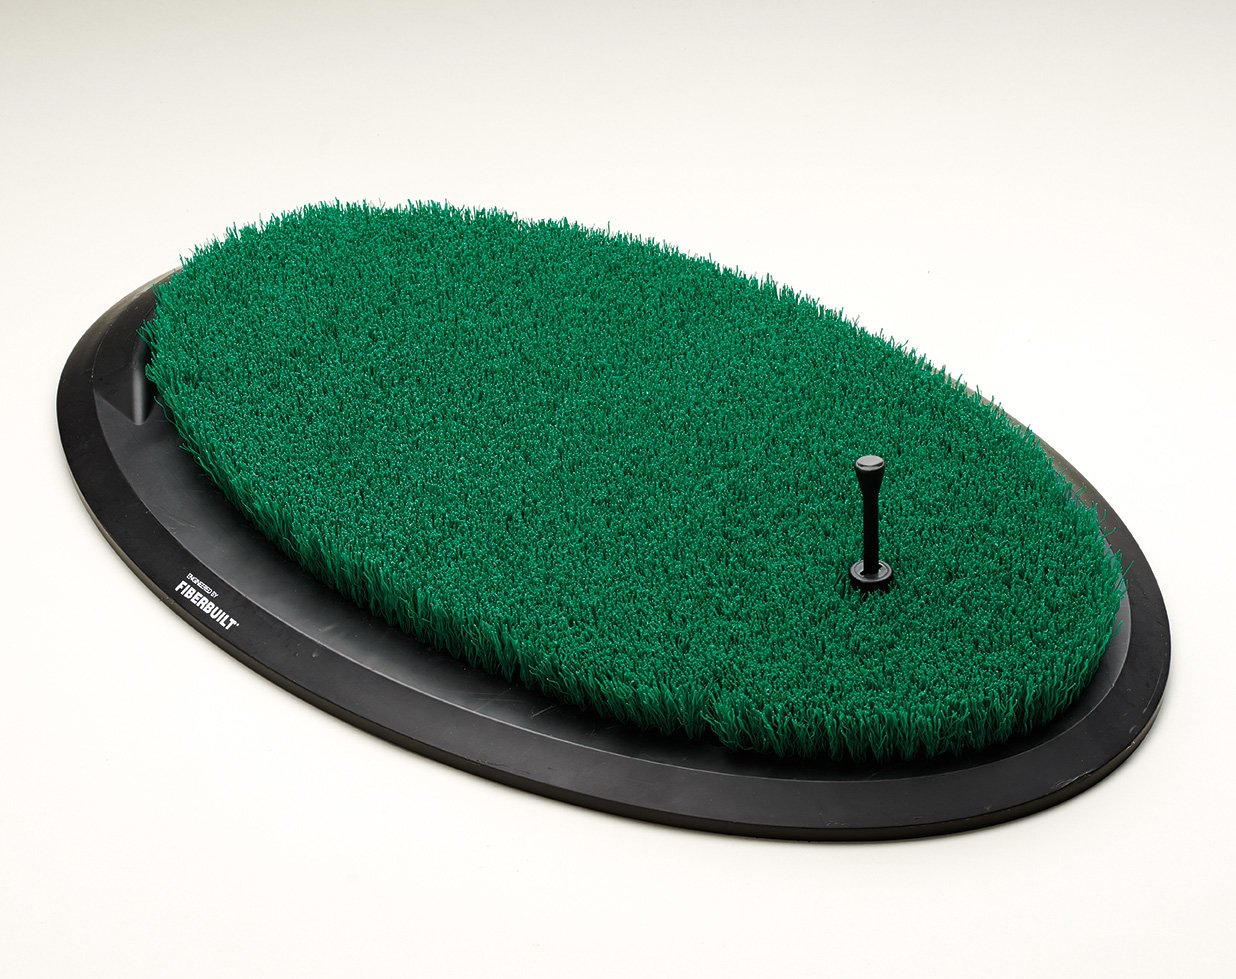 Fiberbuilt Flight Deck Golf Hitting Mat - Oval Shape Outdoor/ Indoor Real Grass-Like Performance Golf Mat with Durable Adjustable Height Tee, Black/Green, 21.25'' x 13.5'' x 1.75'' by Fiberbuilt